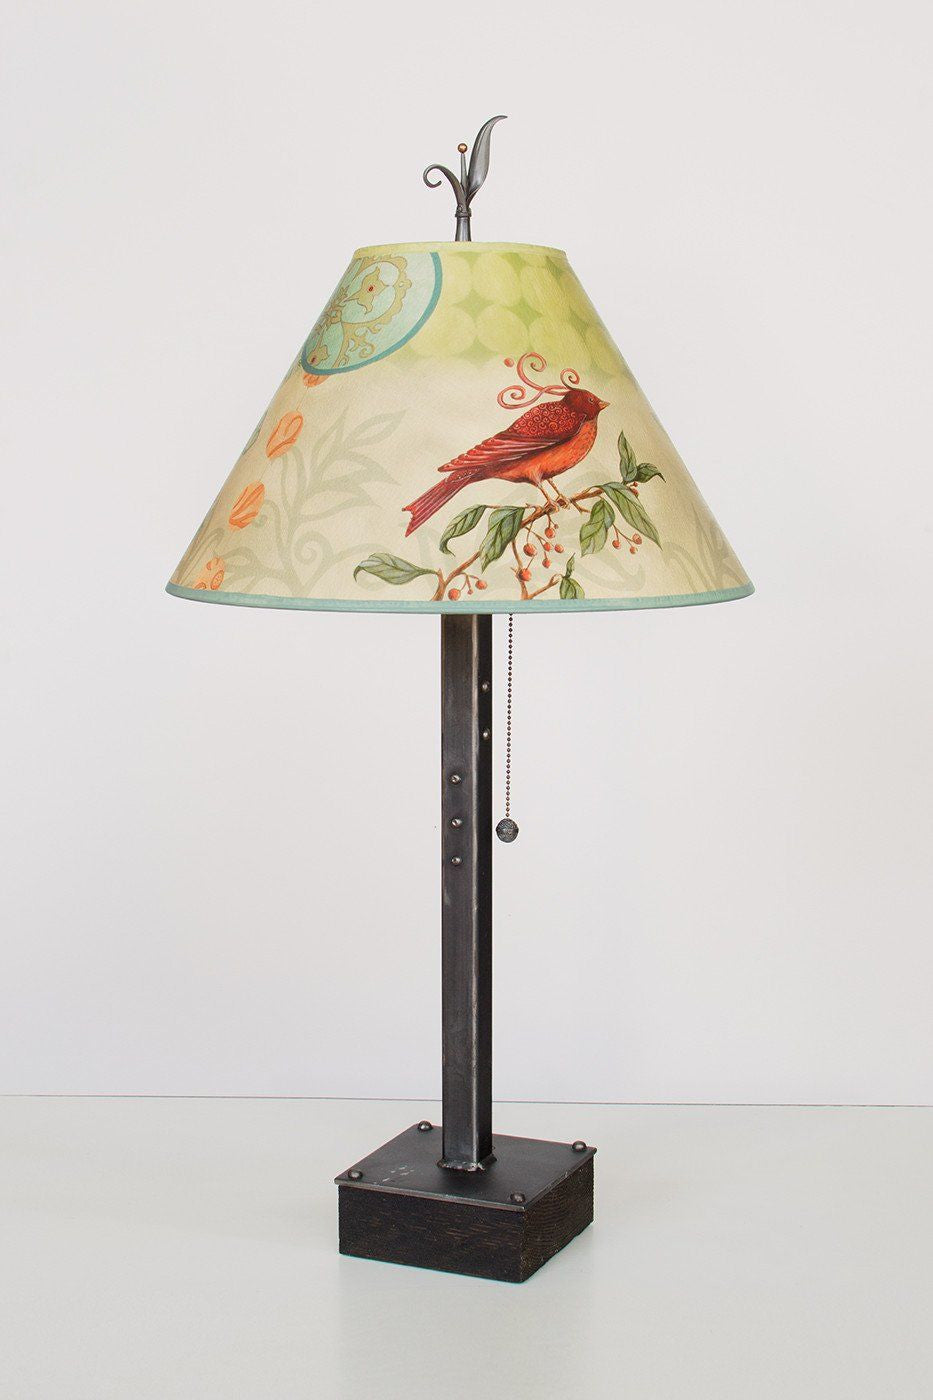 Steel Table Lamp on Wood with Medium Conical Shade in Birdscape - Lit